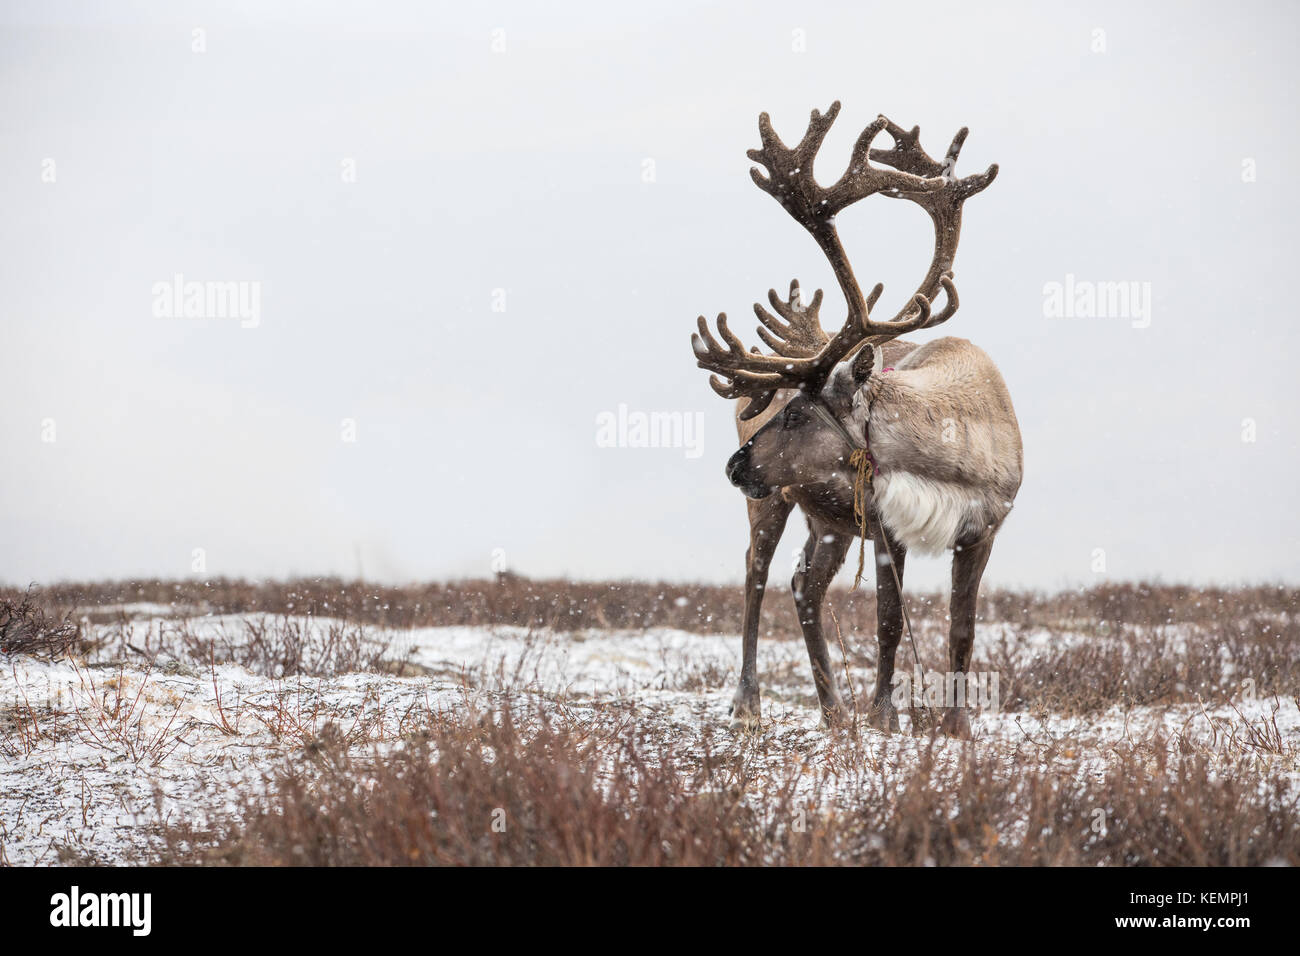 An old male reindeer with magnificent antlers in a heavy snow storm. Khuvsgul, Mongolia. - Stock Image